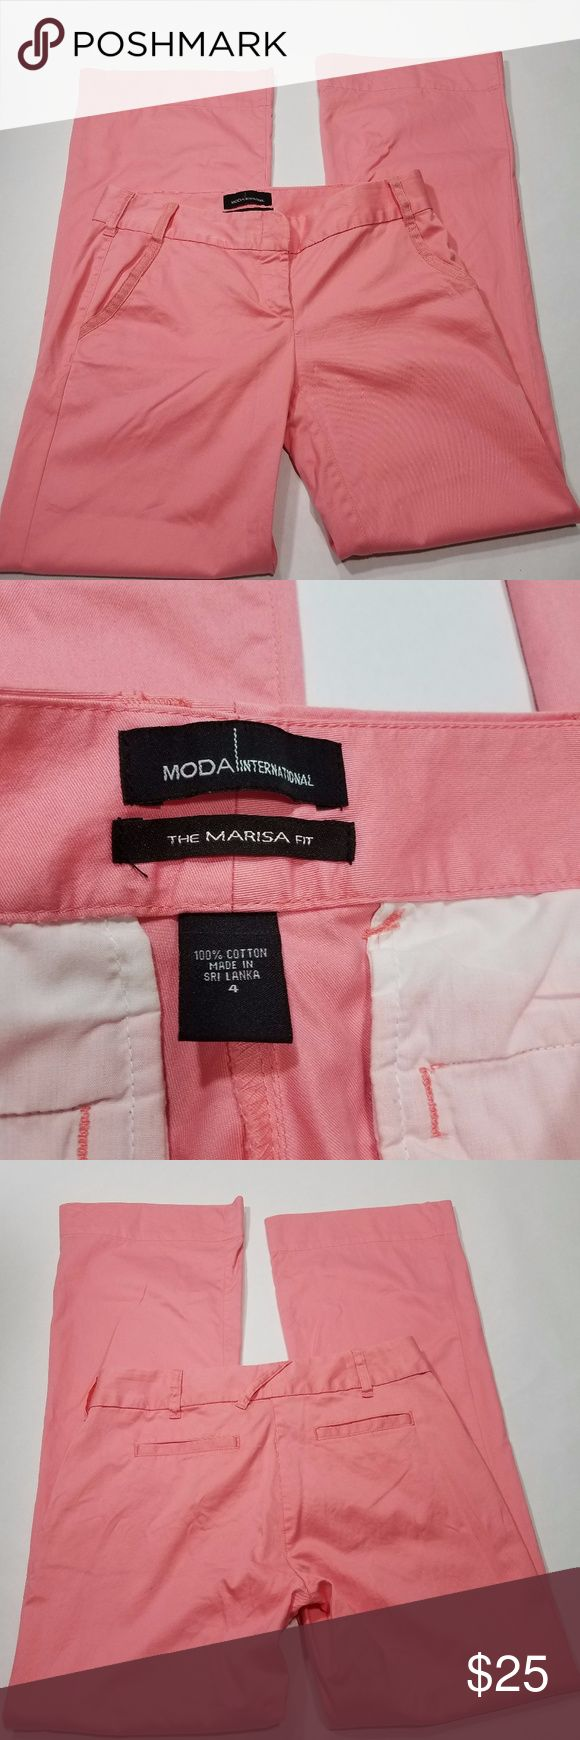 """Moda International Pink Trouser Pants Size 4 item Description: Moda International Womens Pink Marisa Fit Pants  Size: 4 Material(s): 100% Cotton Measurements: **laying flat and are approximate** 15"""" Waist, 8.5"""" Rise, 32"""" Inseam Color(s): Pink Zipper Closure: Yes Button Closure: Yes Pocket(s): Yes Moda International Pants Trousers"""